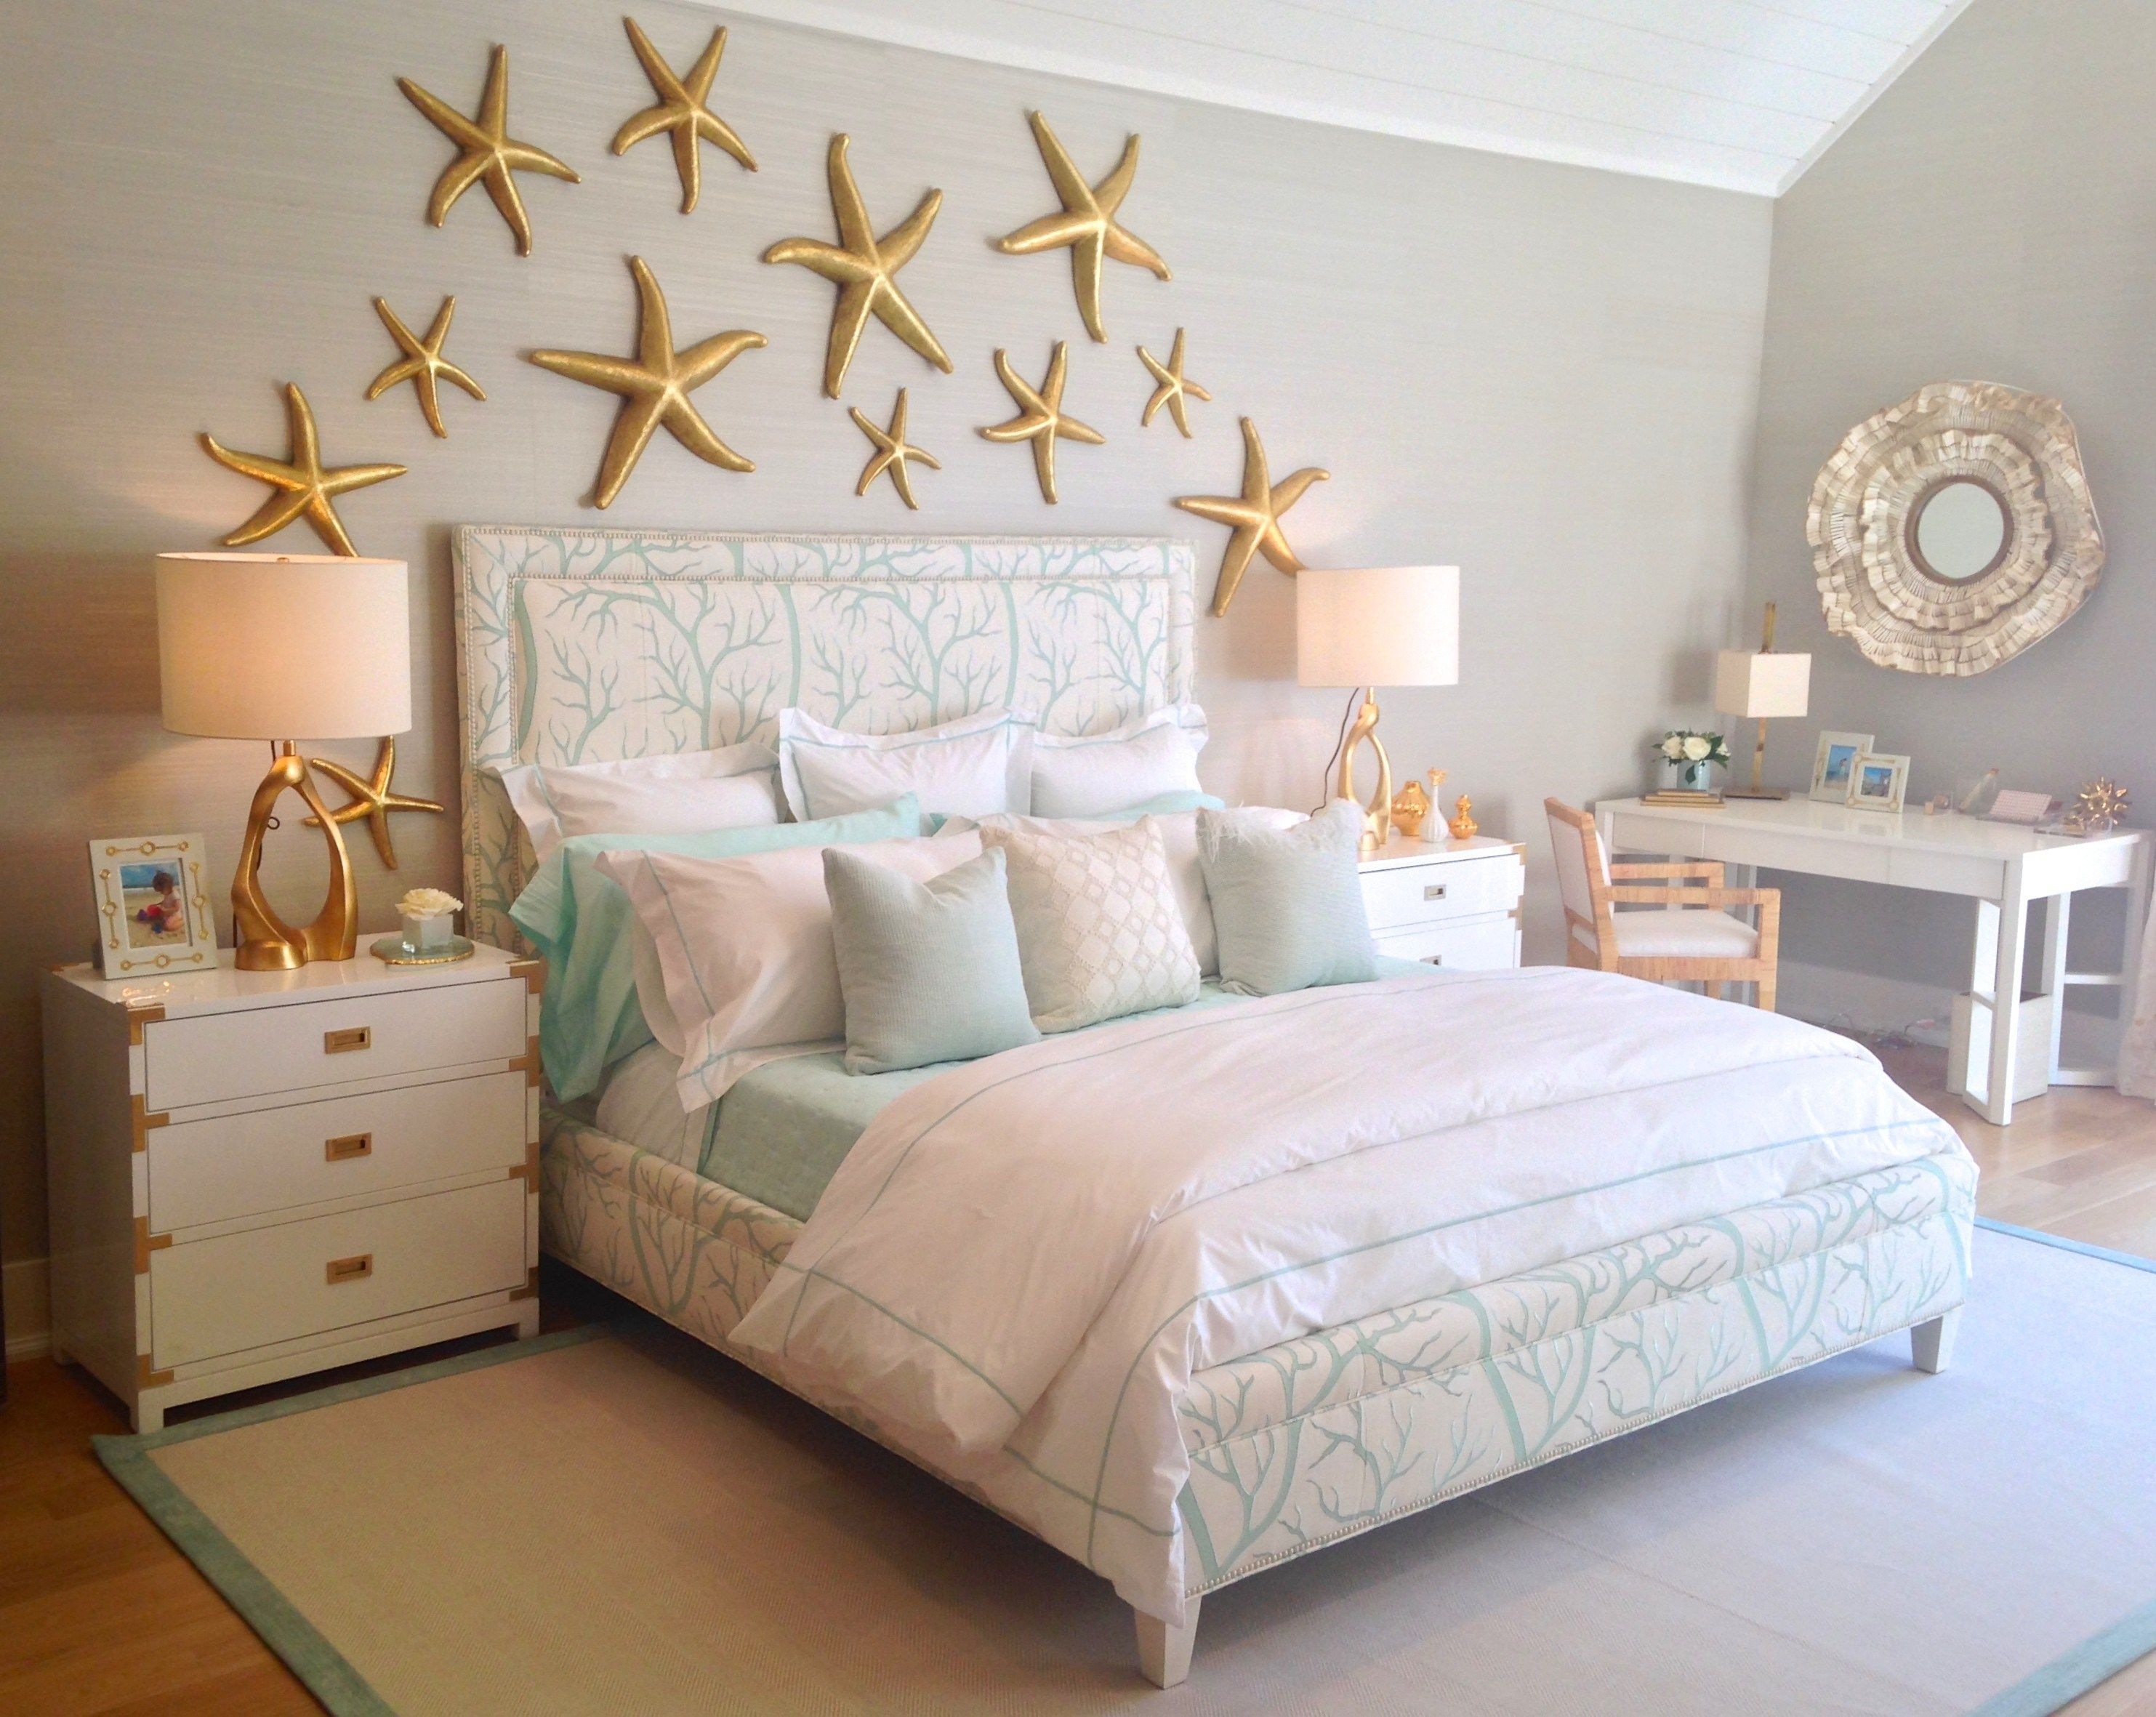 Matrimonio Bed Ocean : Awesome ocean decor bedroom ideas deco surf bedroom decor